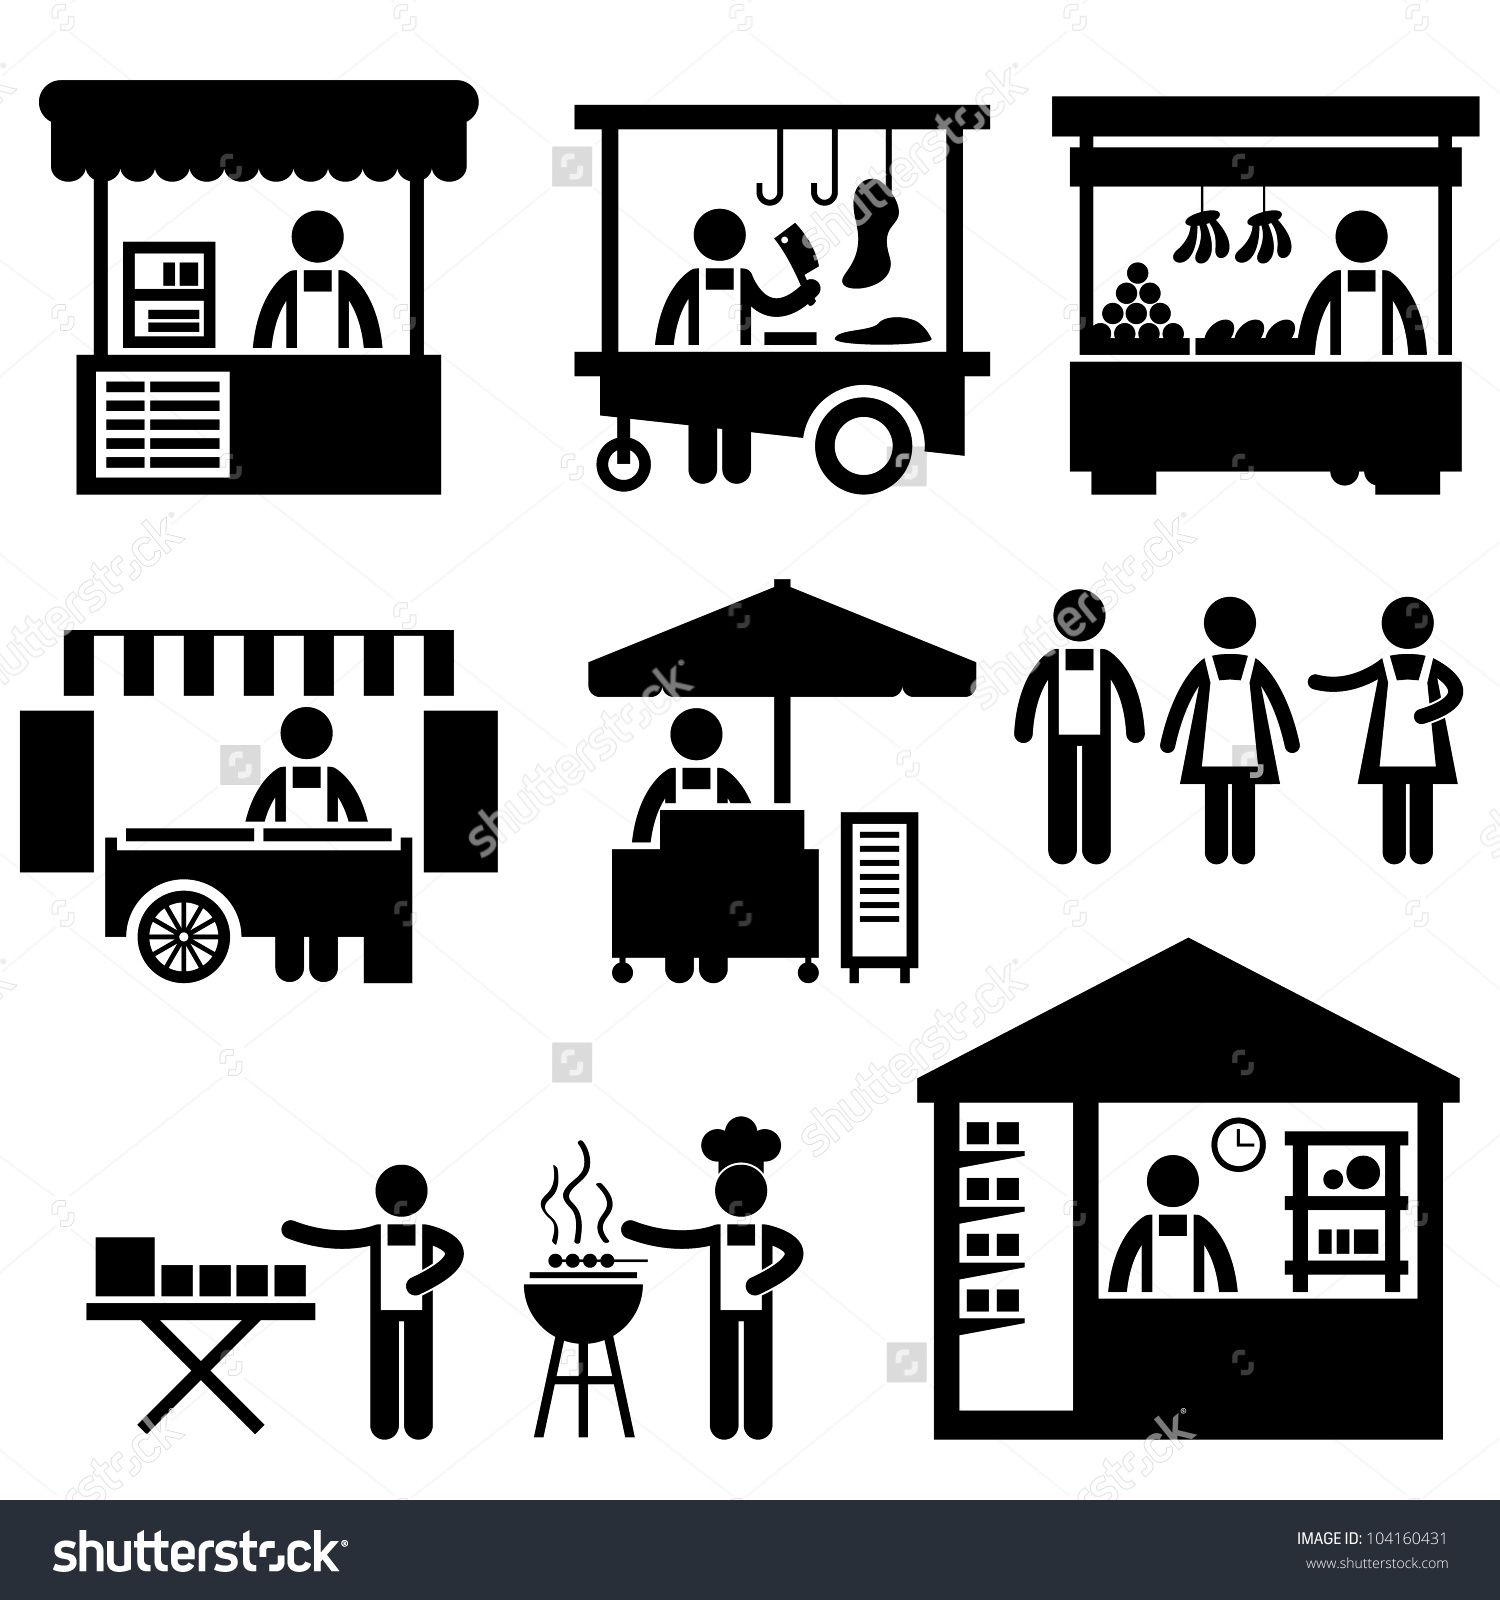 Stock vector business stall store booth market marketplace shop business stall store booth market marketplace shop icon symbol sign pictogram vectorjunky free vectors icons logos and biocorpaavc Images